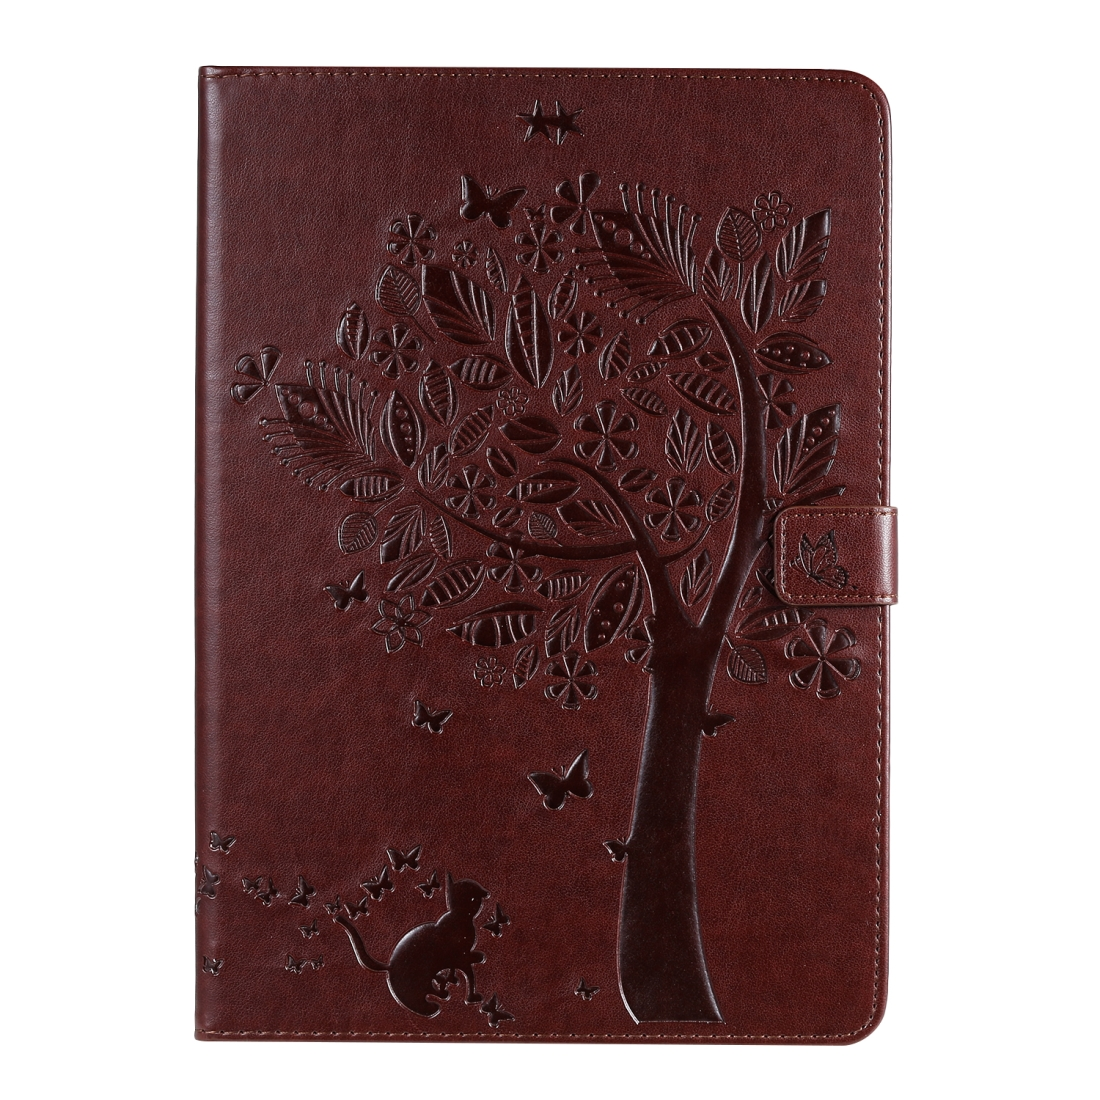 iPad 7th Generation Case (10.2 Inch) Also Fits Pro 10.5/ Air 2019, Leather Design (Brown)